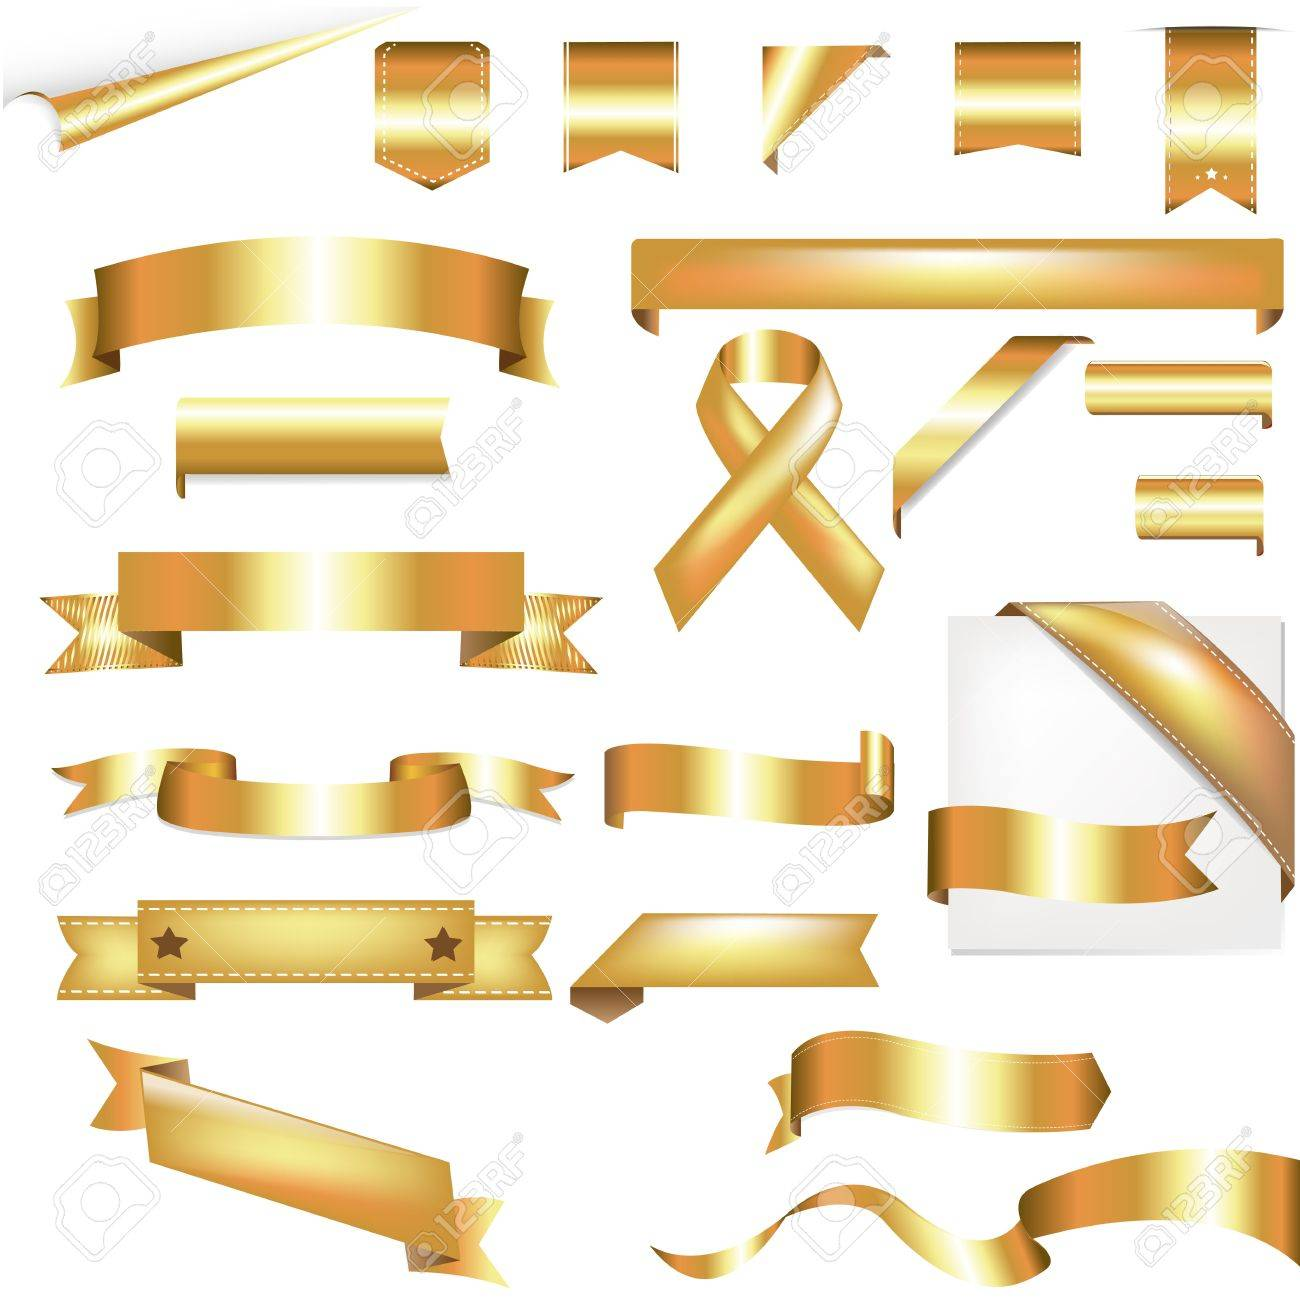 Gold Set, Isolated On White Background, Vector Illustration Stock Vector - 10784852